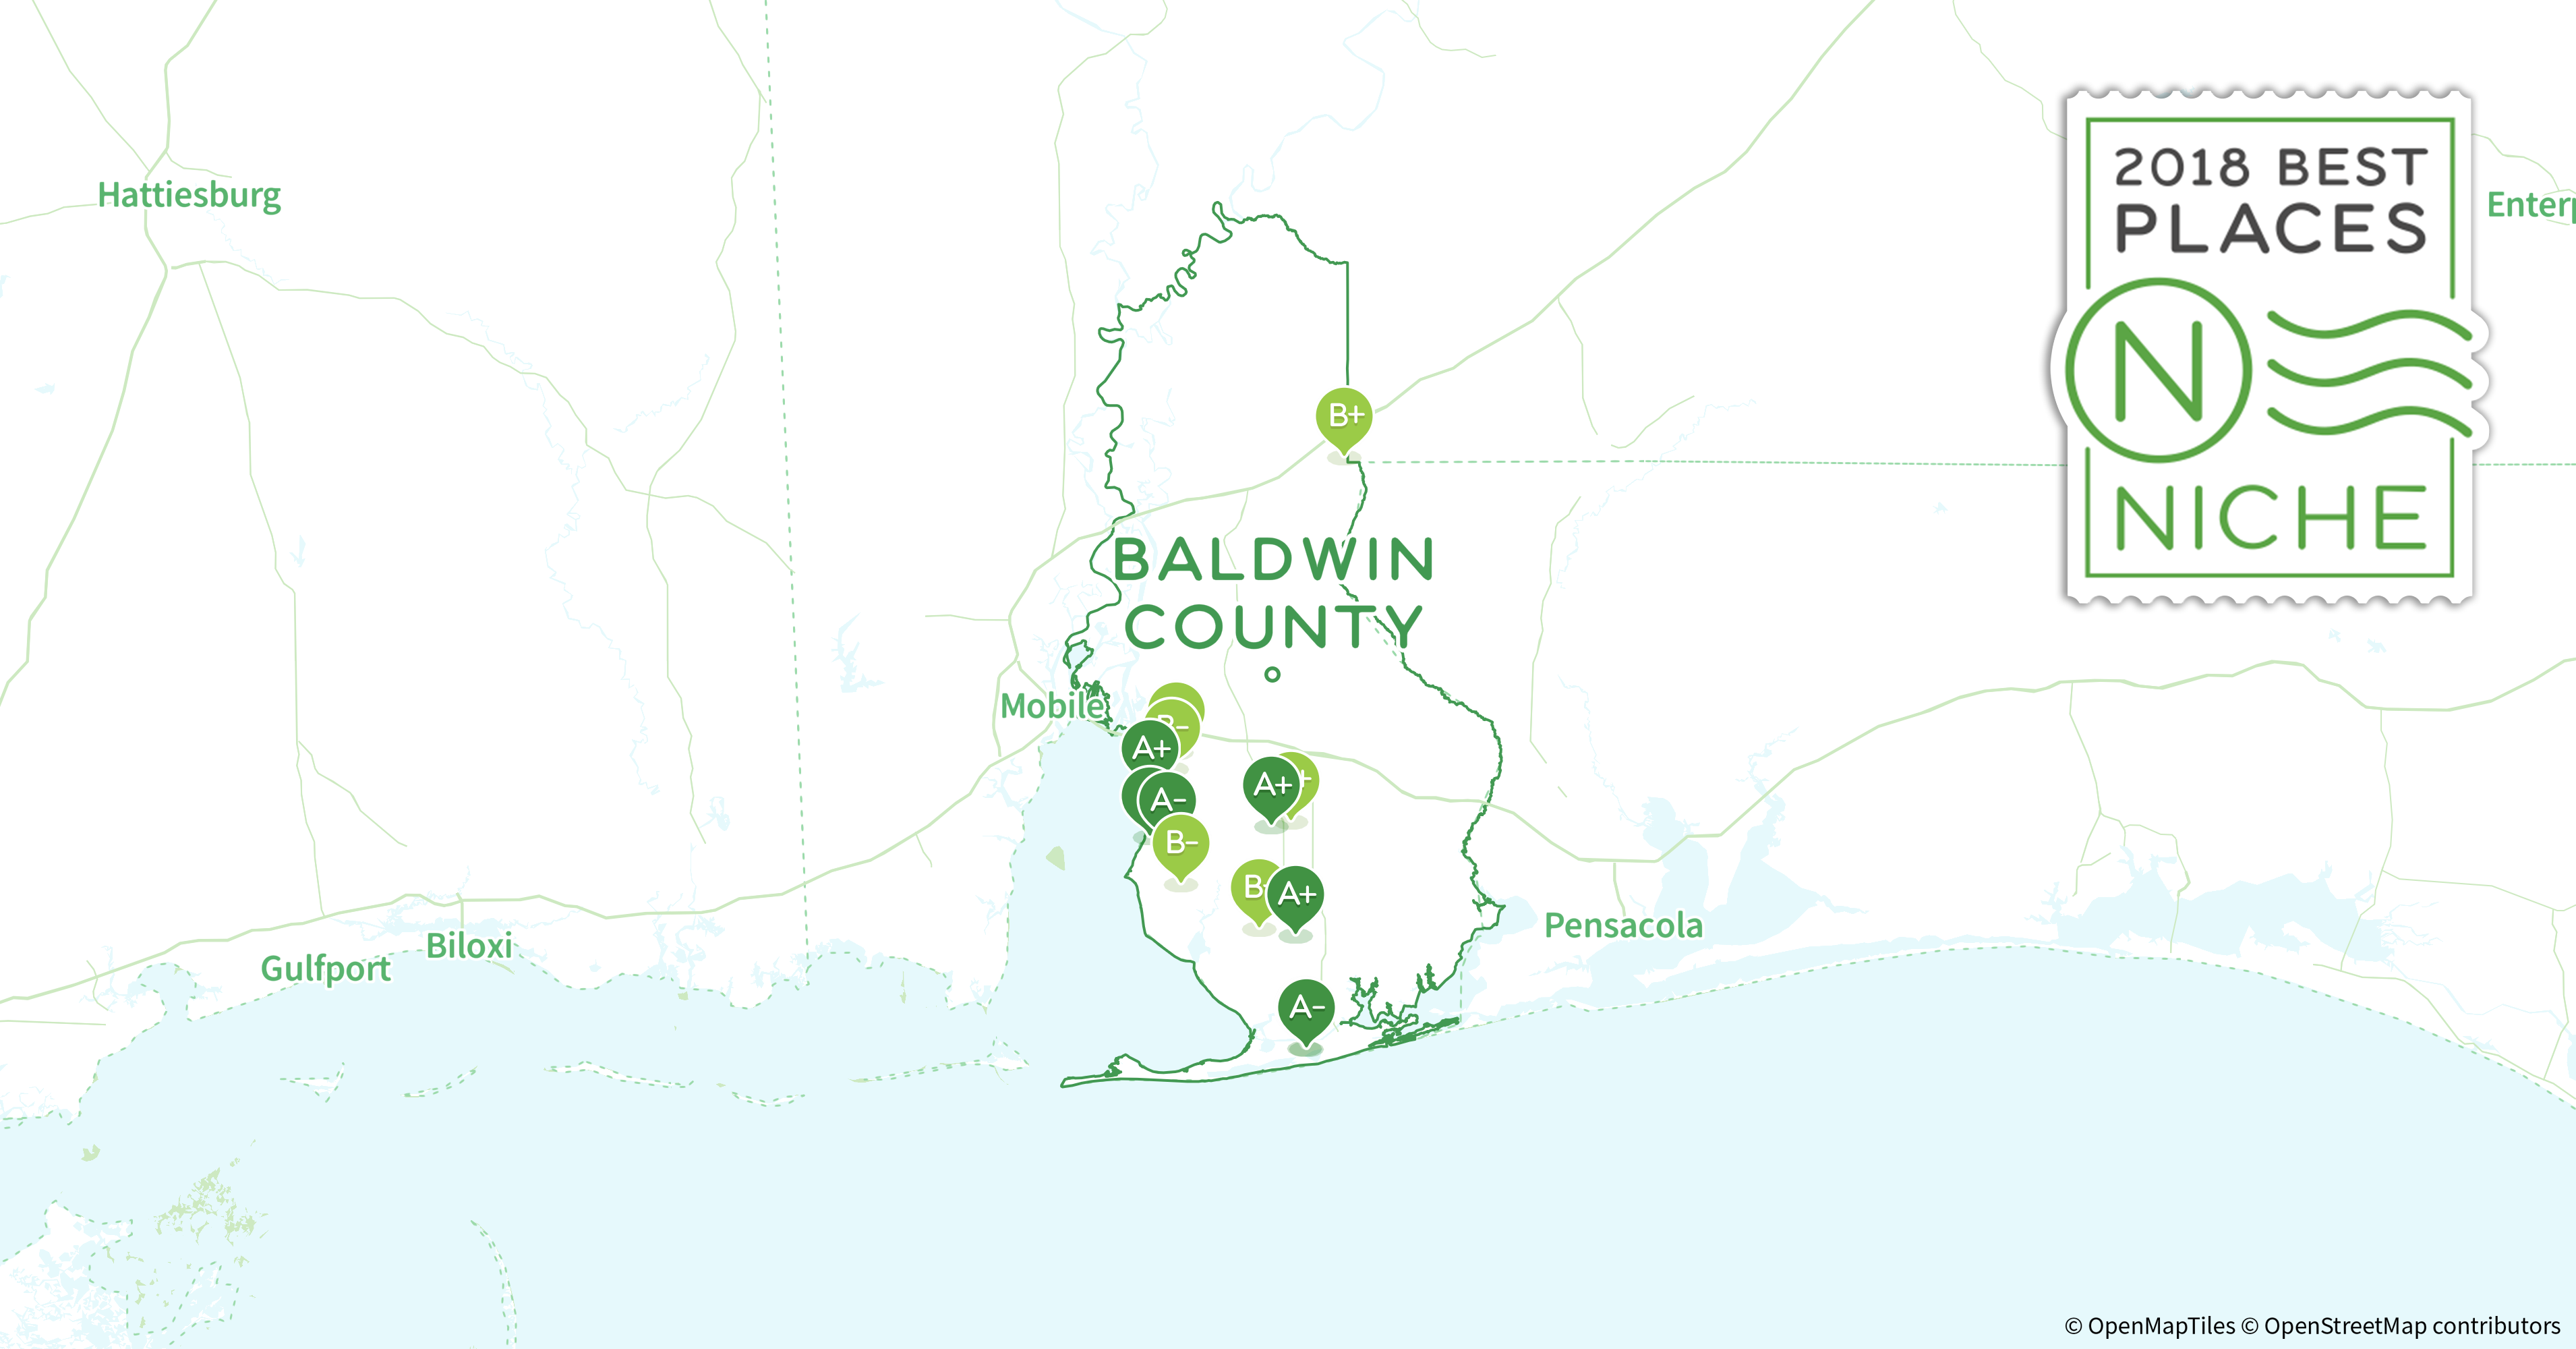 Compare Cost of Living in Baldwin County, AL - Niche on cook county alabama map, walton county alabama map, montgomery county, macon alabama map, madison county, monroe county, houston county, city of cullman alabama map, calhoun county, washington county, gulf state park alabama map, gulf shores alabama map, shelby county, jefferson county, morgan county, black warrior river alabama map, south carolina alabama map, butler county, silverhill alabama map, autauga county alabama map, dekalb county, baldwin beach express map, stockton alabama map, gulf shores, spanish fort, escambia county, barbour county alabama map, daphne alabama map, st. augustine alabama map, orange beach, nashville alabama map, perdido alabama map, mobile county, north alabama county map, baker county alabama map, pine grove alabama map,